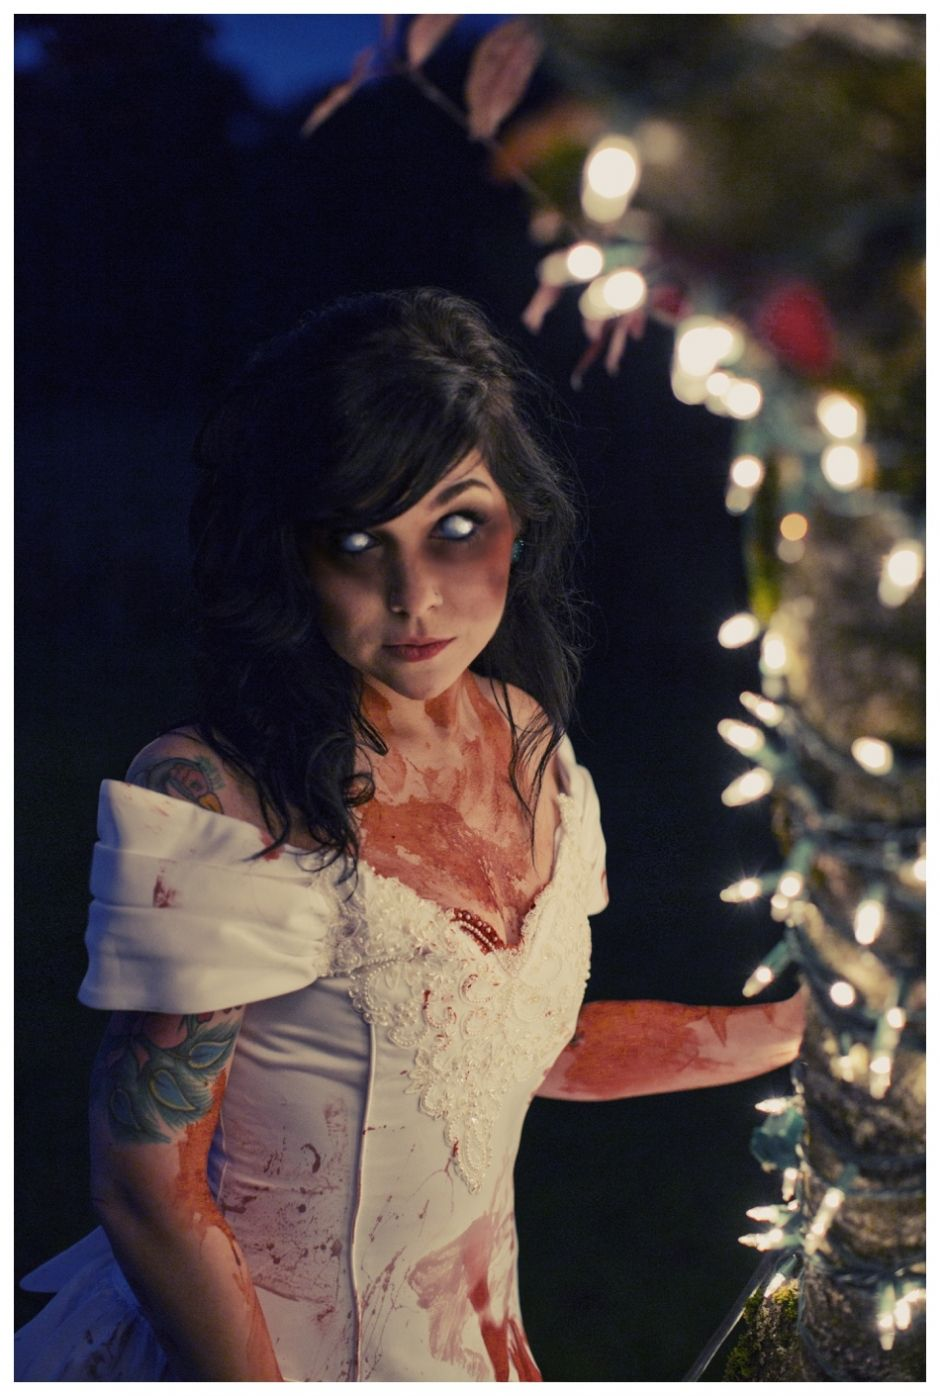 Zombie Styled Wedding Shoot at Northern Lights Christmas Tree Farm ...